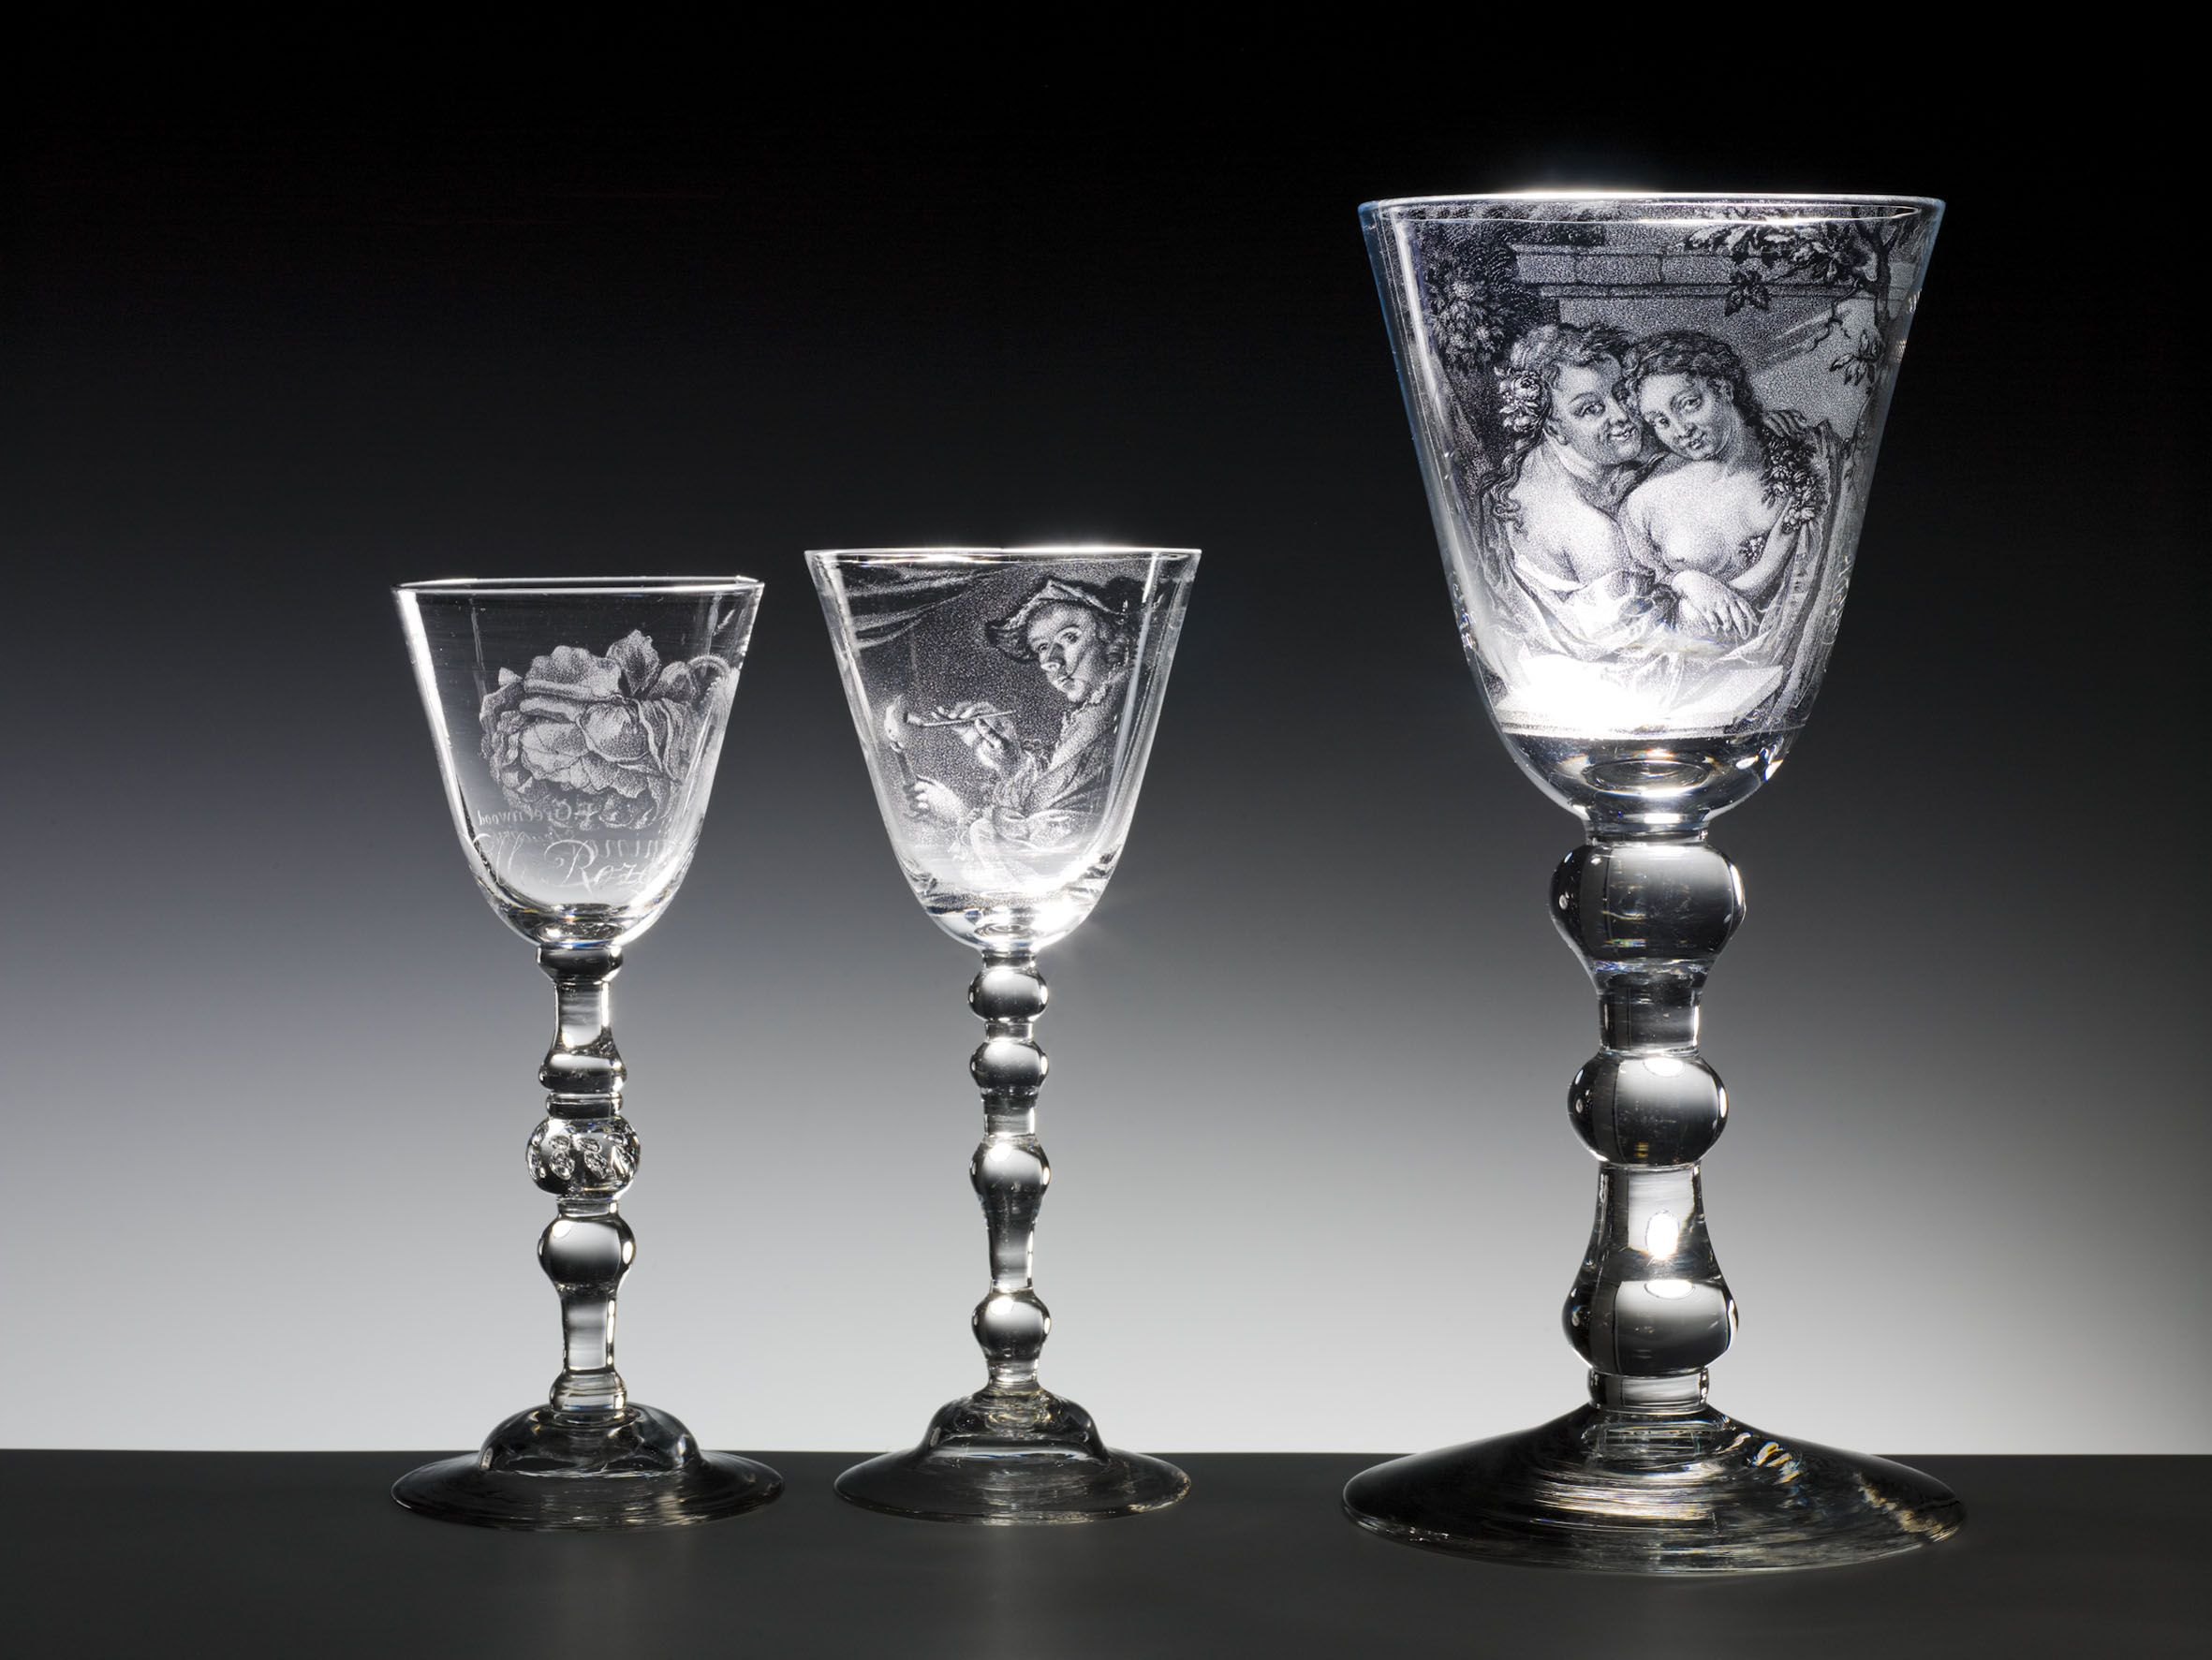 glasses with stipple engraving by Frans Greenwood, The Netherlands or England, diamond-point stipple engraving: Frans Greenwood (1680-1763), Dordrecht 1746, clear colourless lead glass, h. 20.5 cm, h. 21.3 cm, h. 28.6 cm -pi (2362×1773)